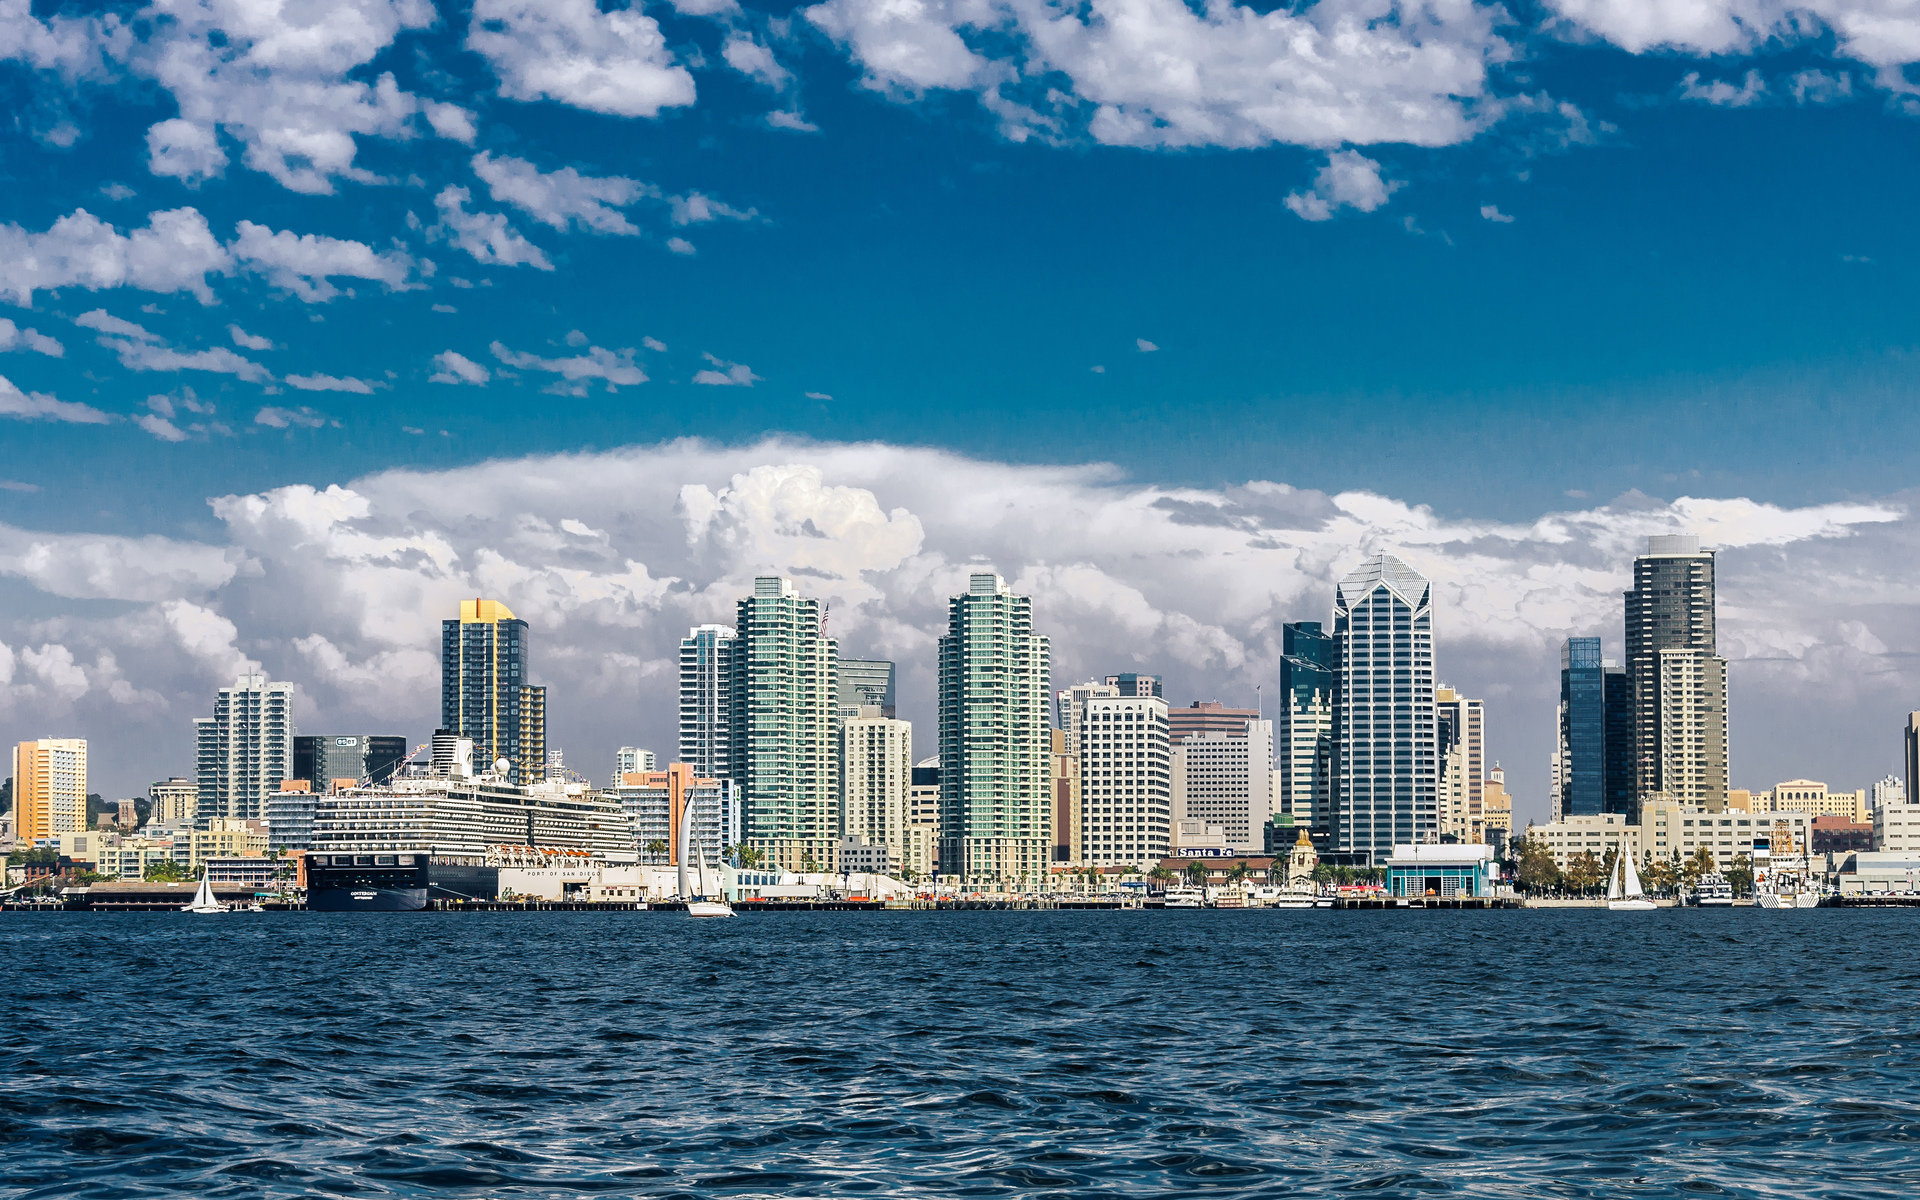 San Diego wallpapers HD for desktop backgrounds